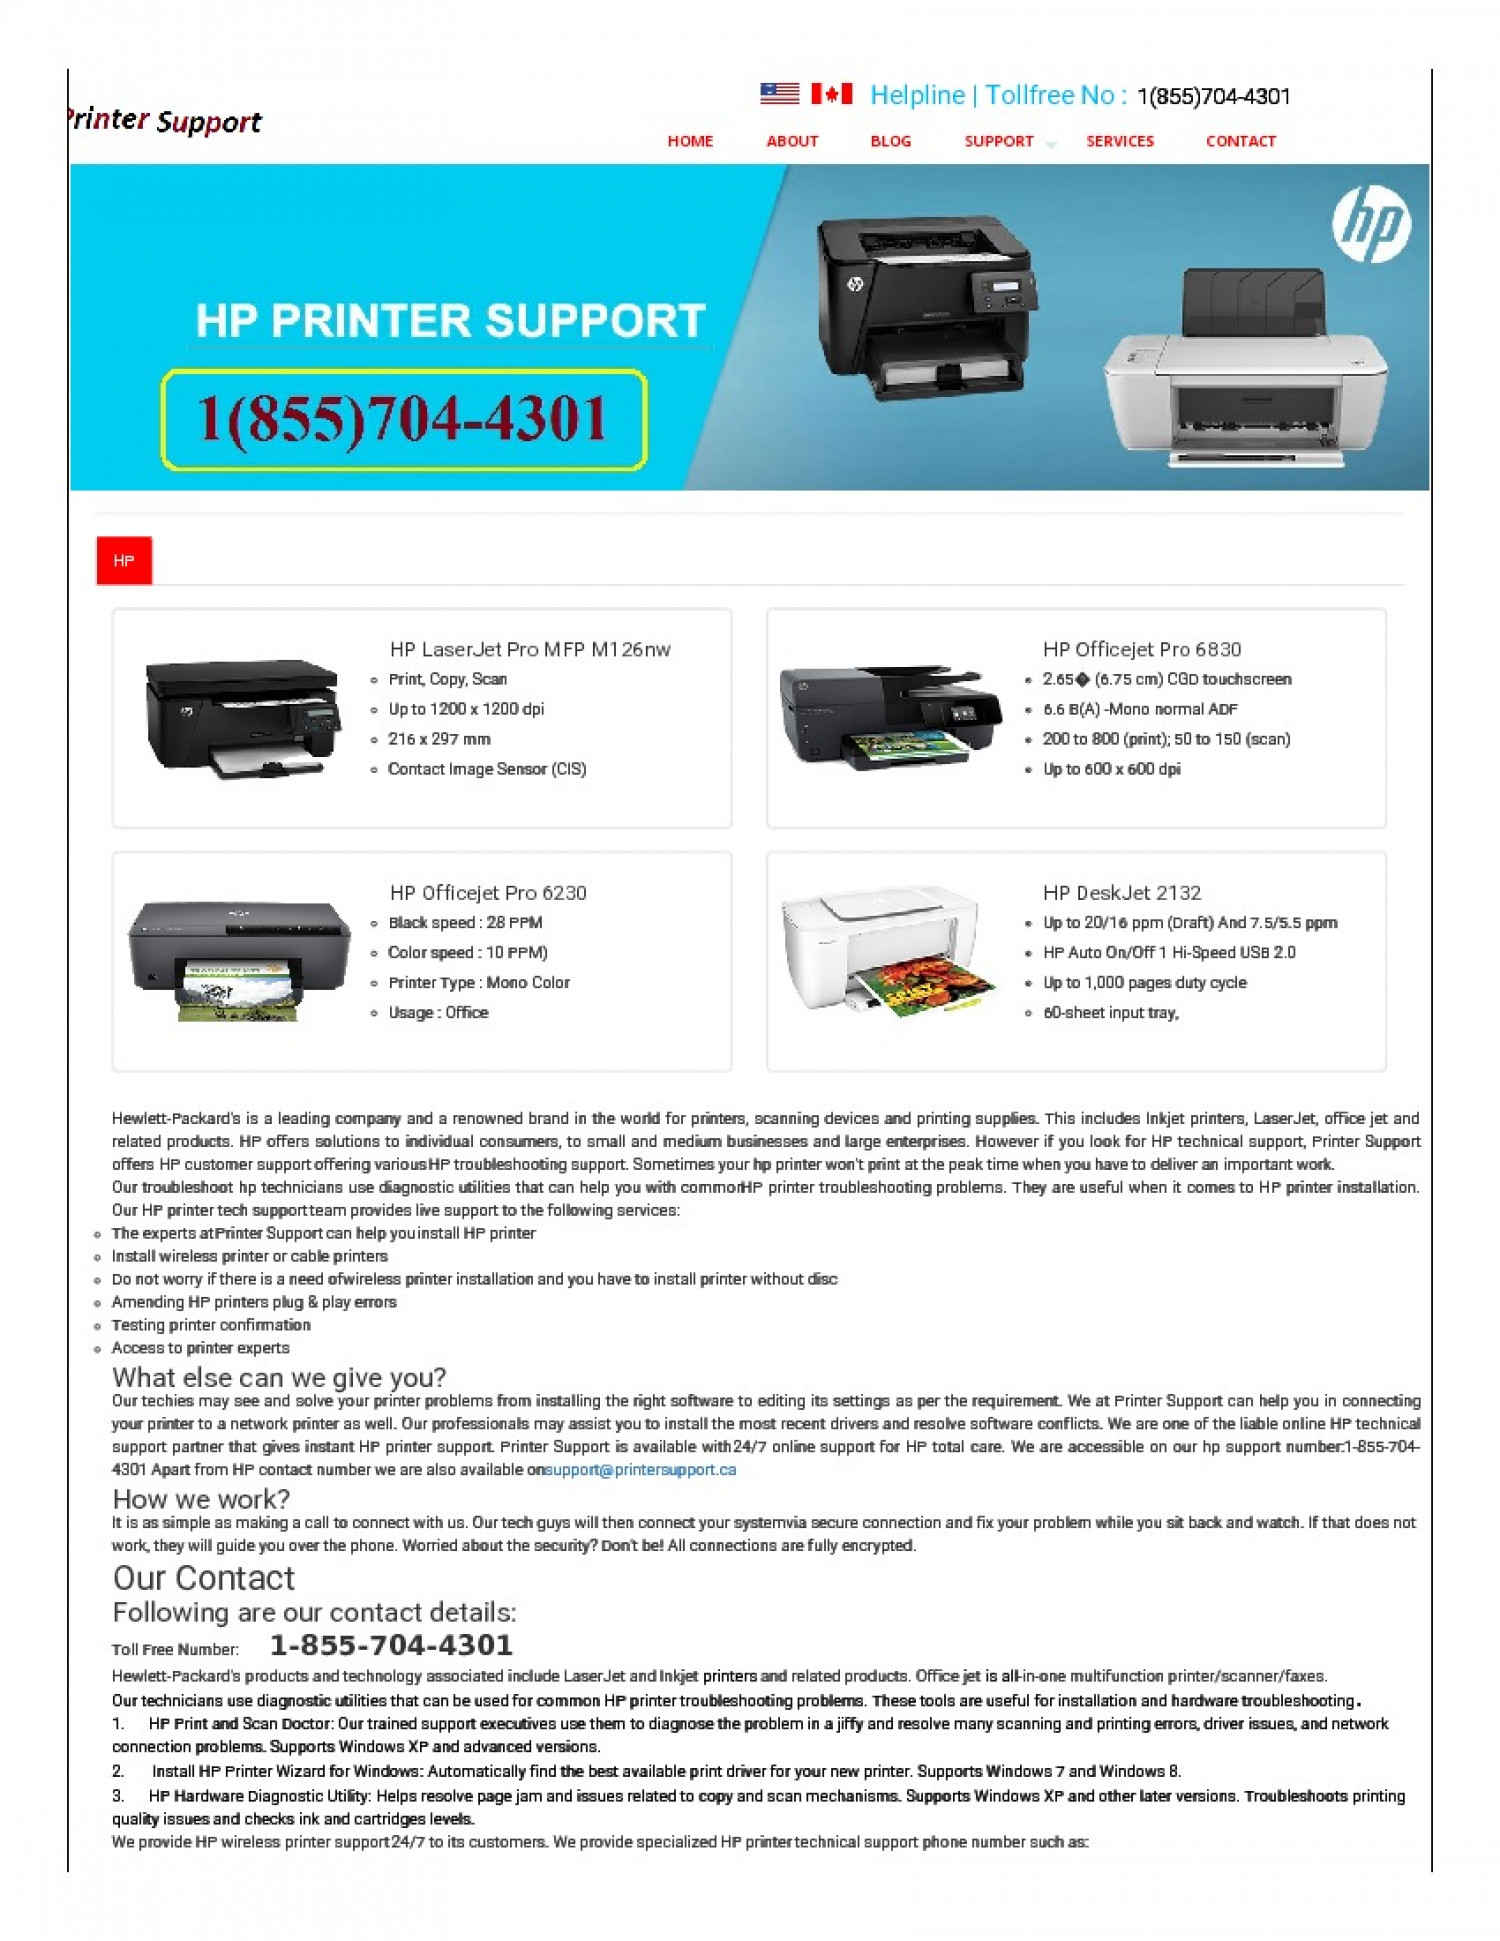 Hp Printer toll free number+1(855)704-4301 Infographic